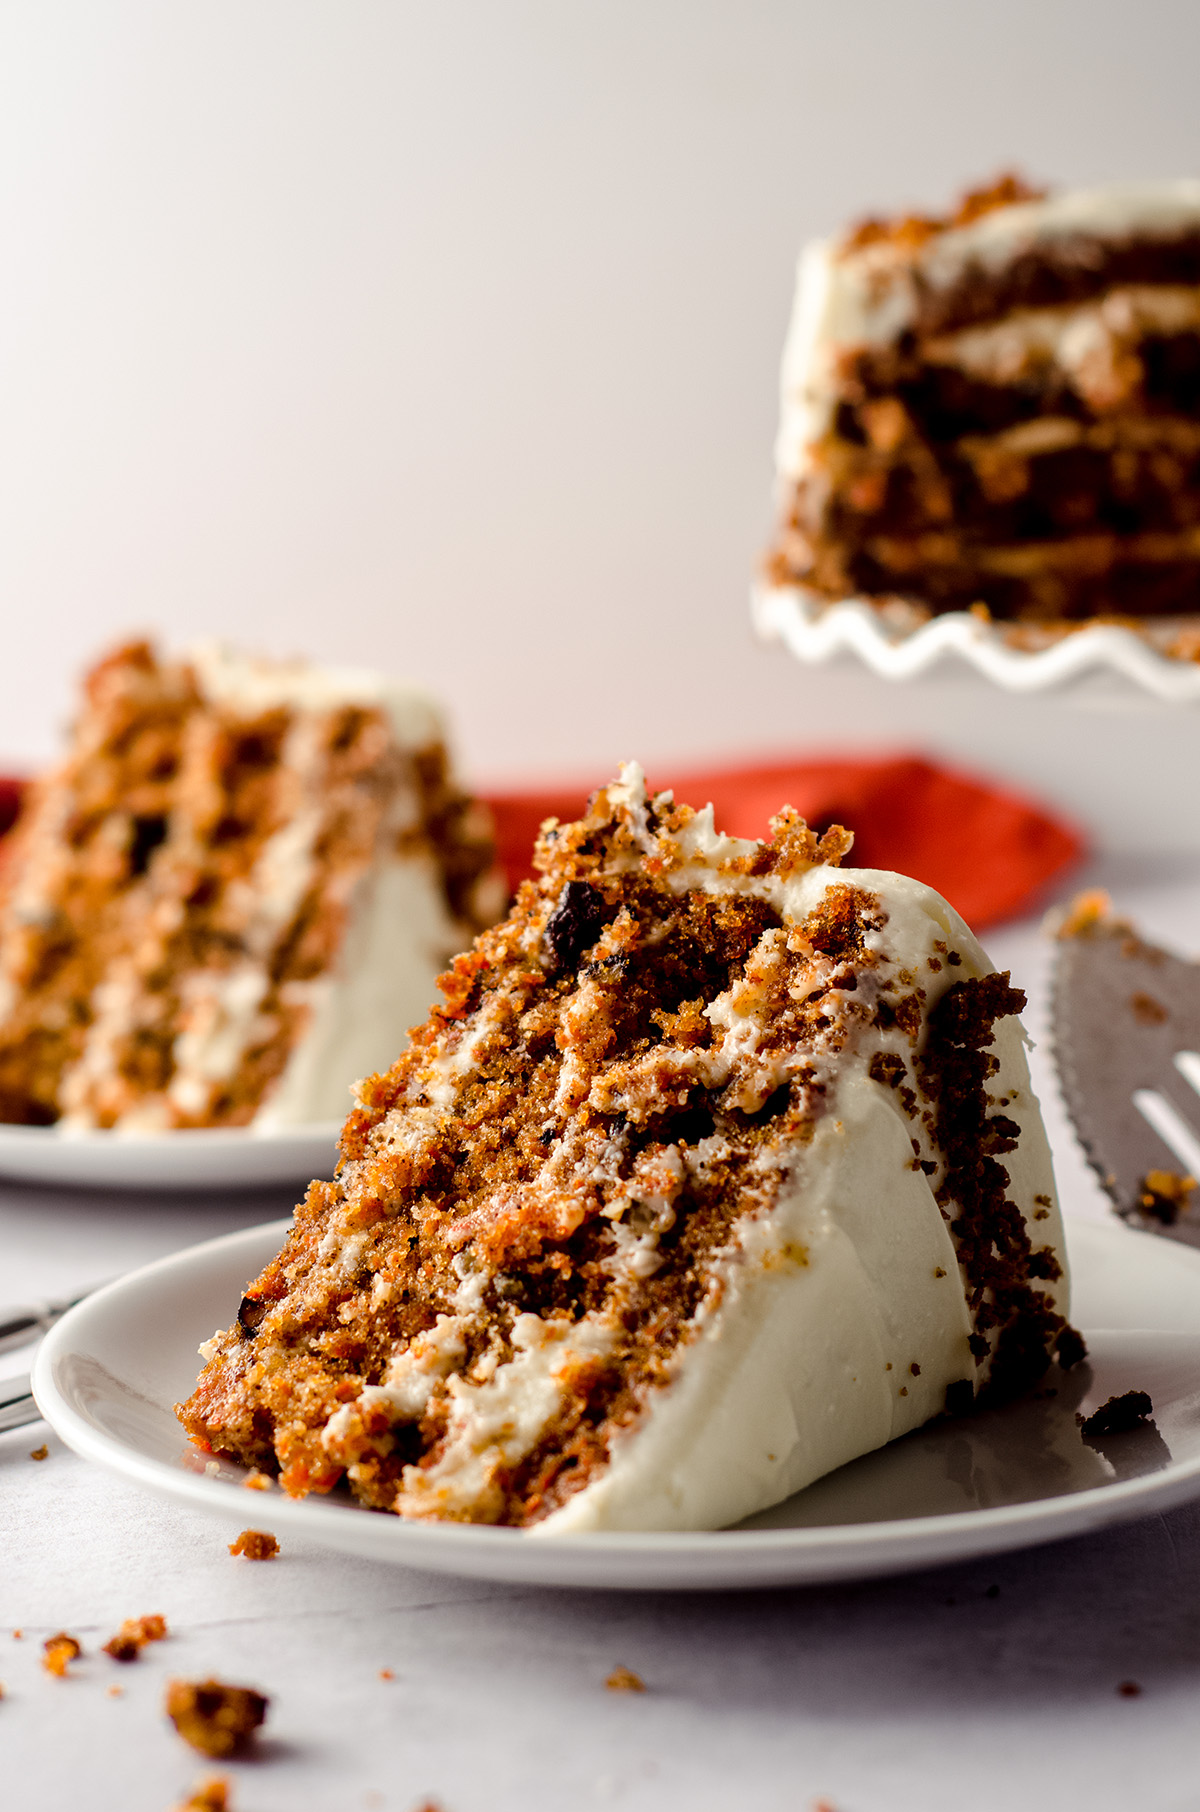 slice of carrot walnut cake on a white plate